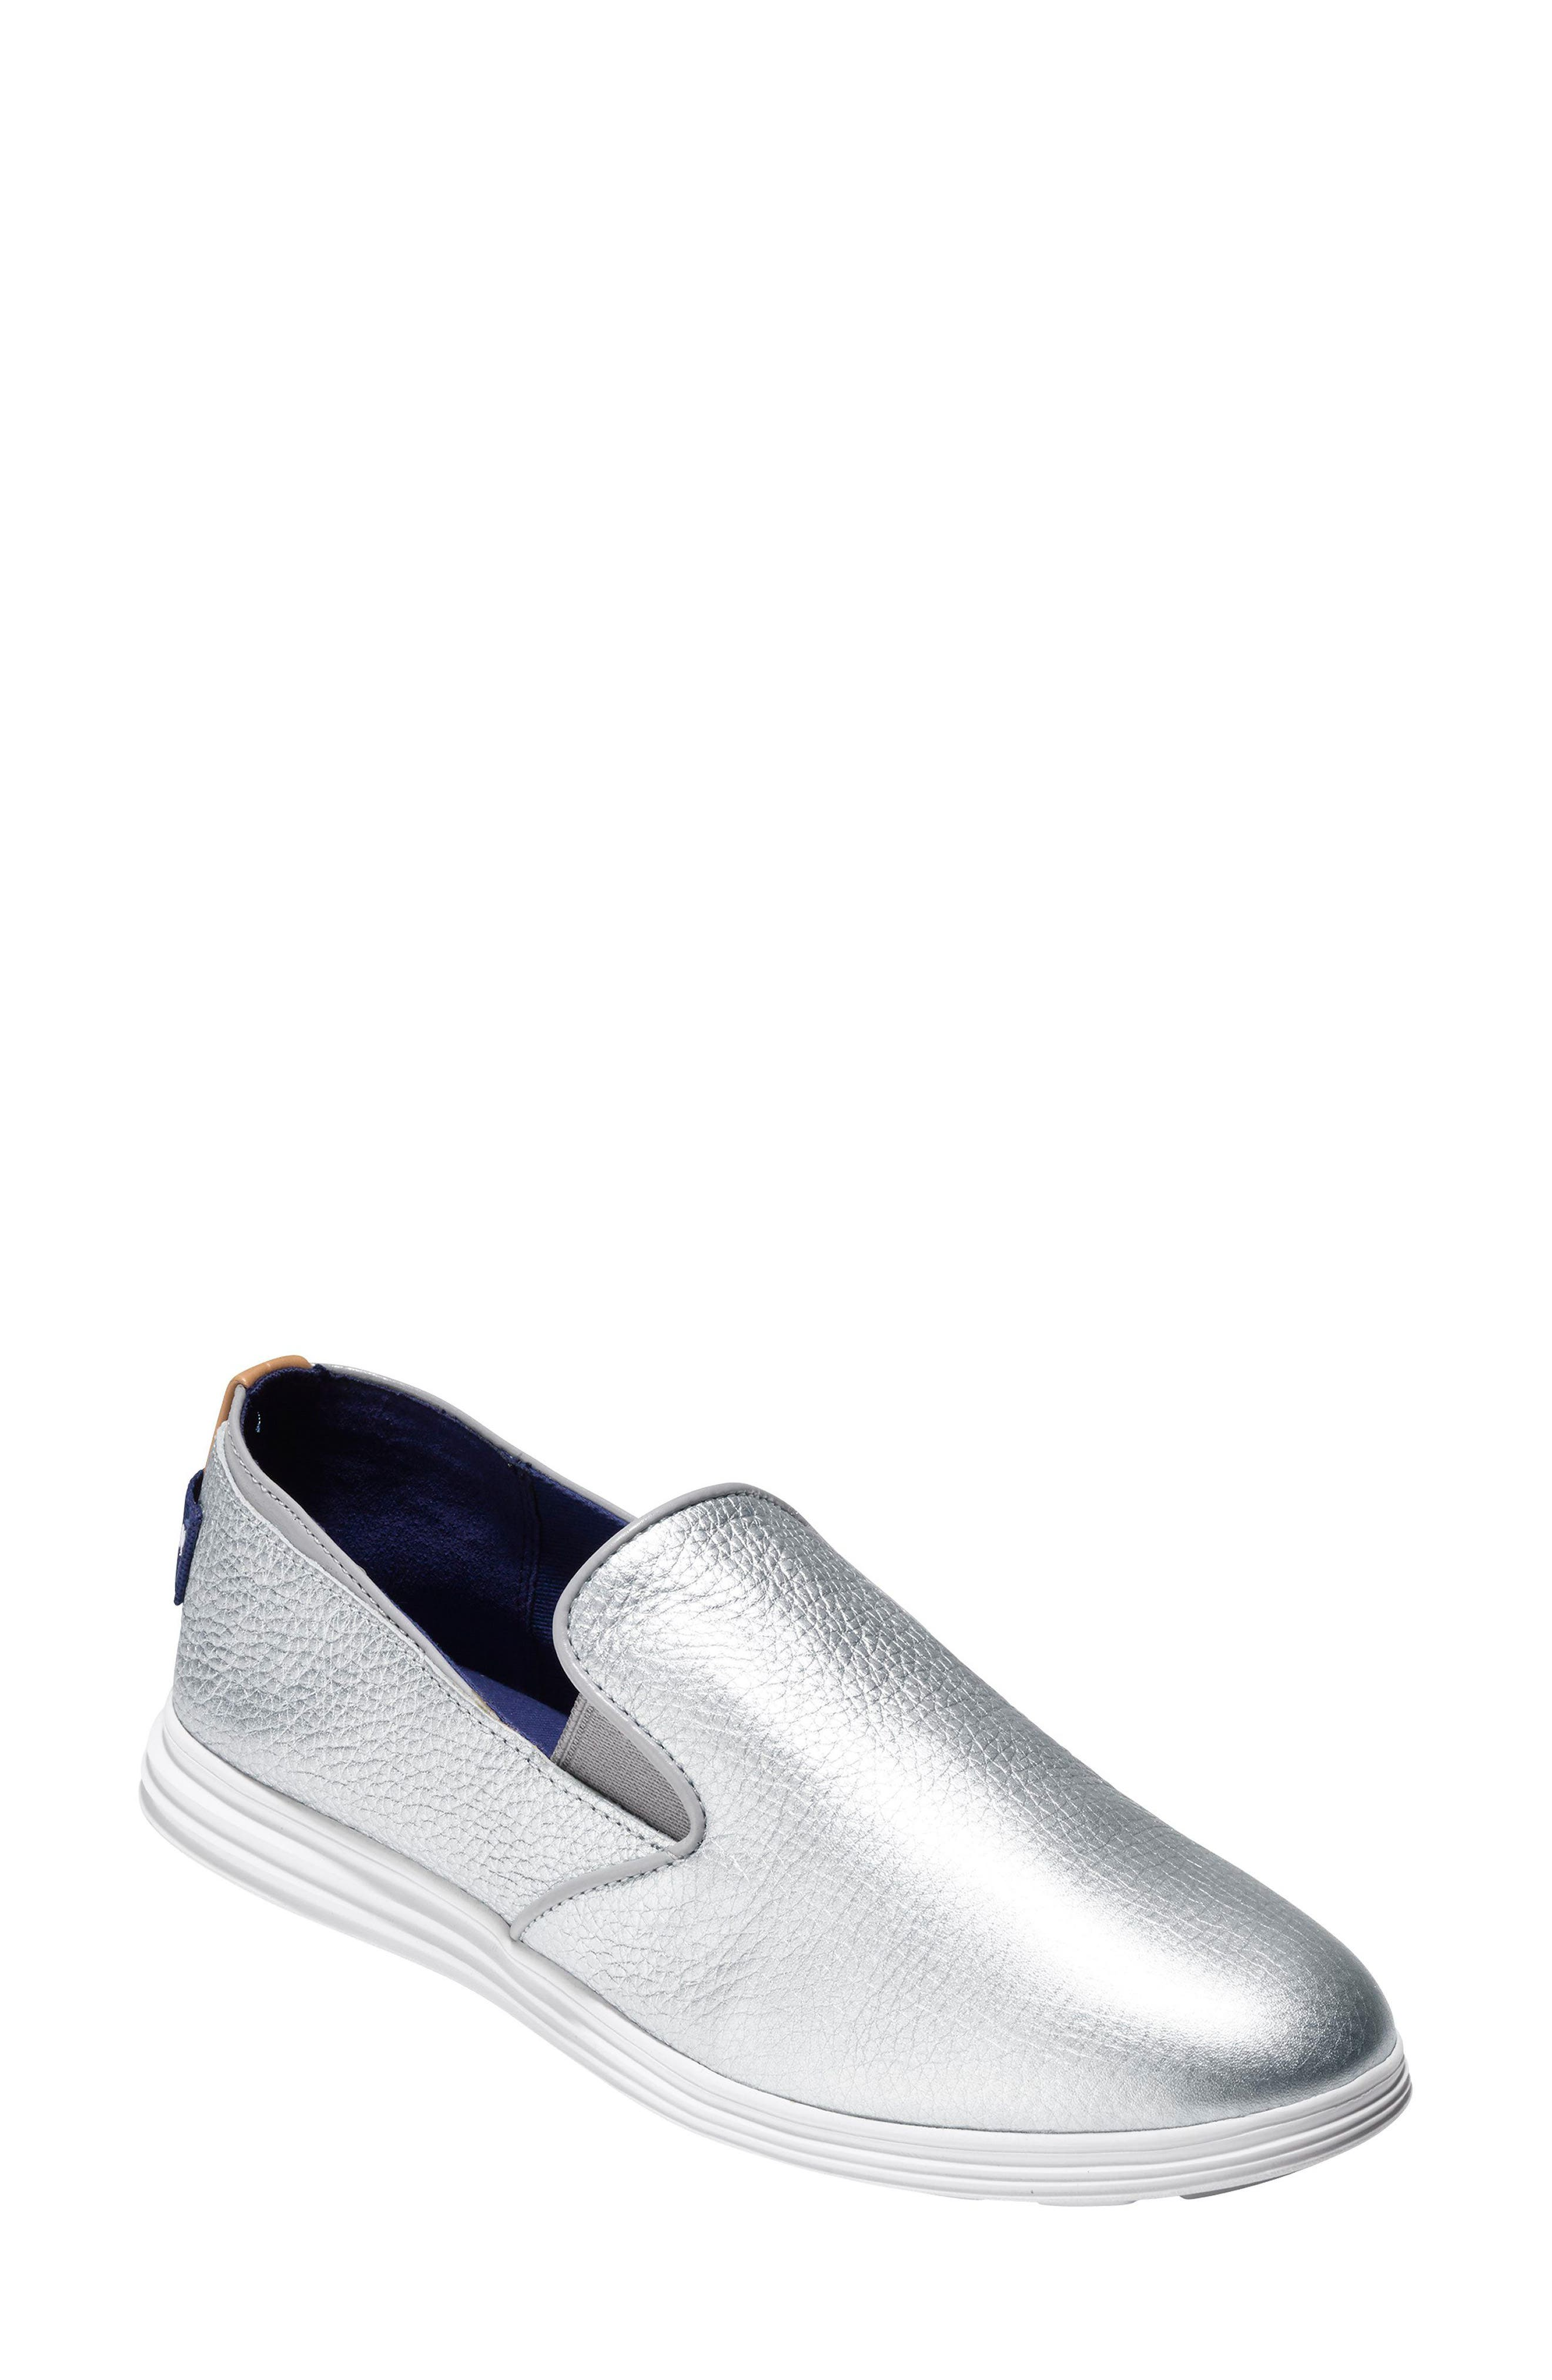 COLE HAAN 'Ella' Slip-On Sneaker